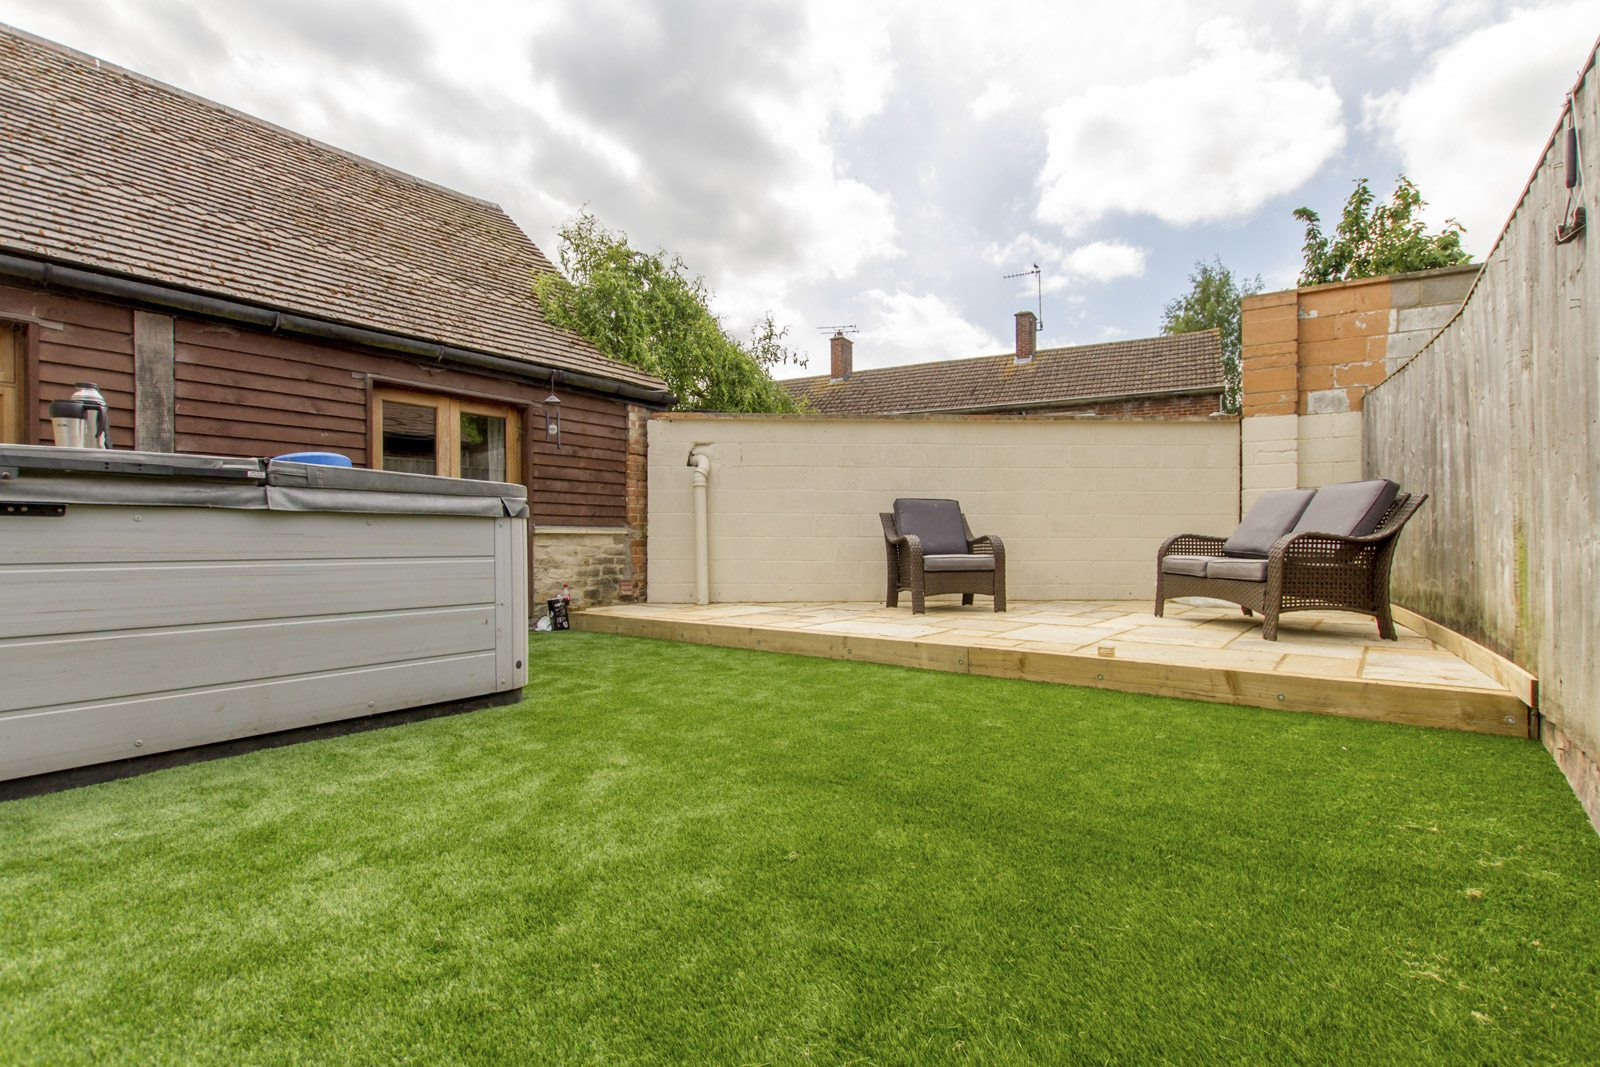 New Driveway Oxford, Artificial Grass